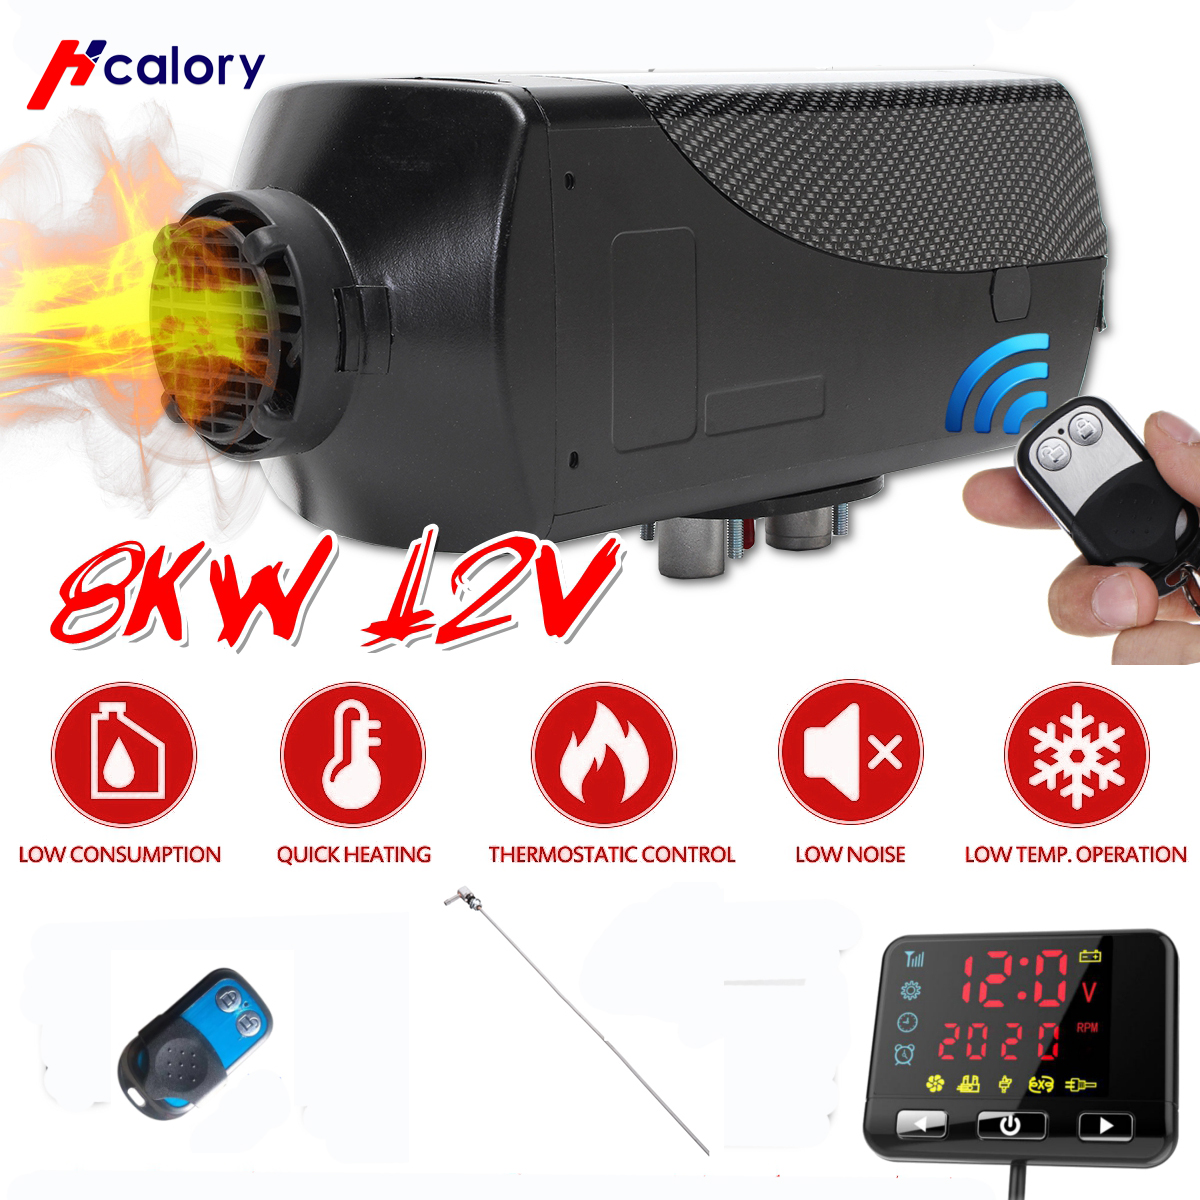 12v 5kw Diesel Air Heater+LCD Switch+Remote+Silencer For Trucks Boat Car Trailer